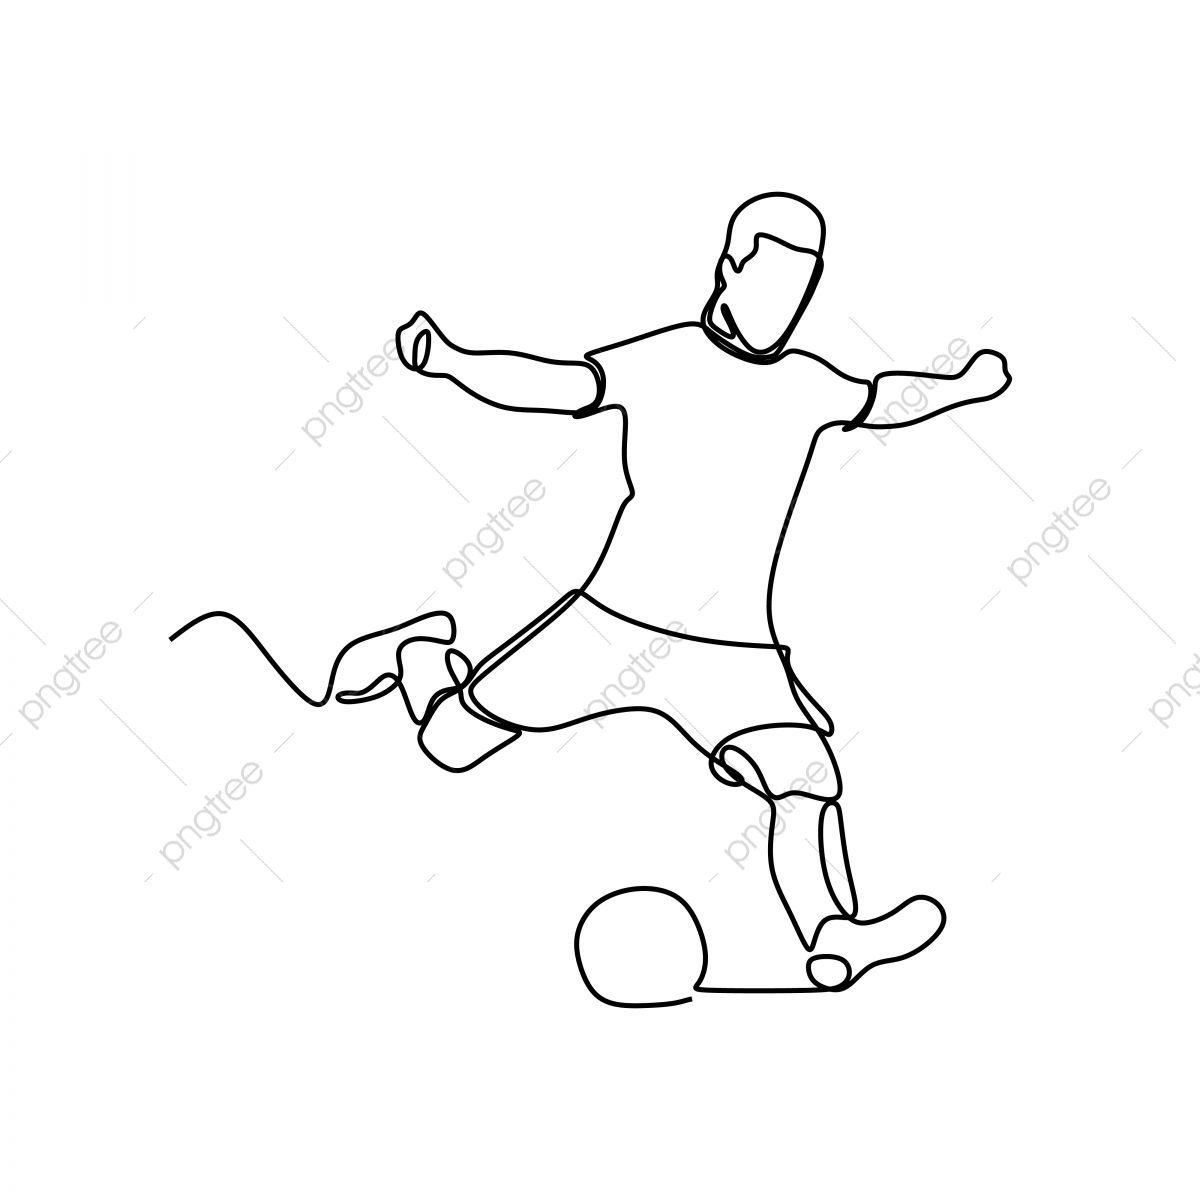 Football Player Continuous Line Drawing Kick Defense Foot Png And Vector With Transparent Background For Free Download